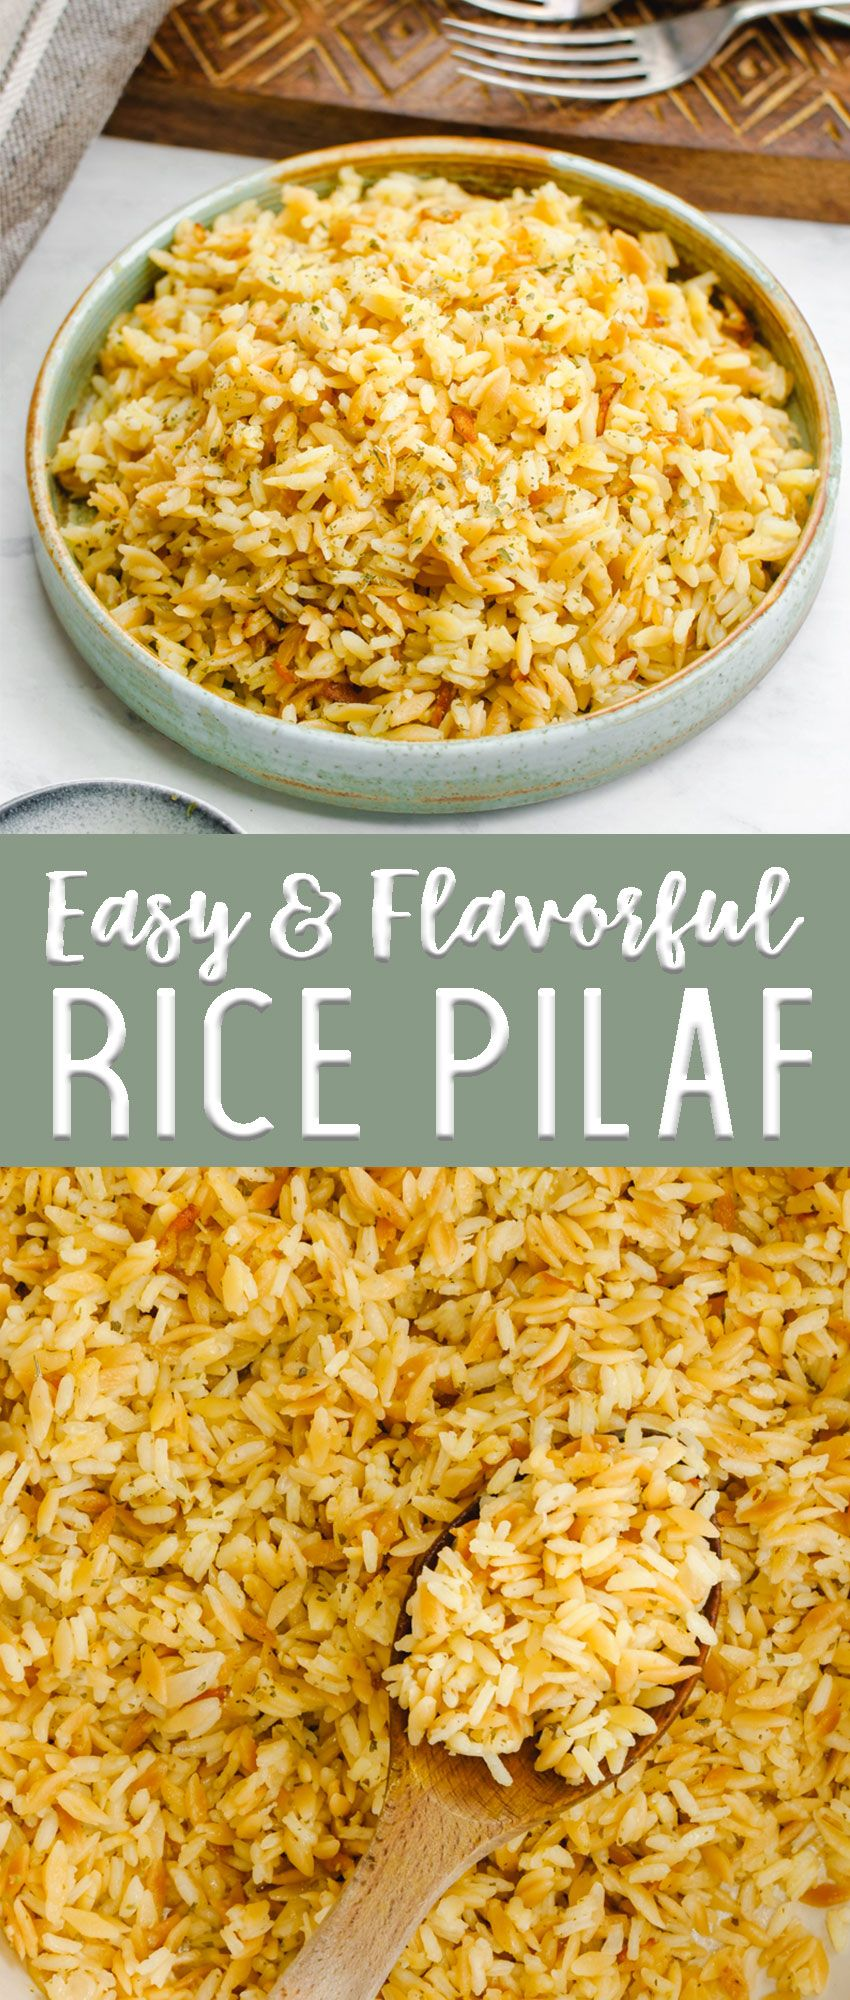 Easy Rice Pilaf Recipe Rice Side Dishes Side Dishes Easy